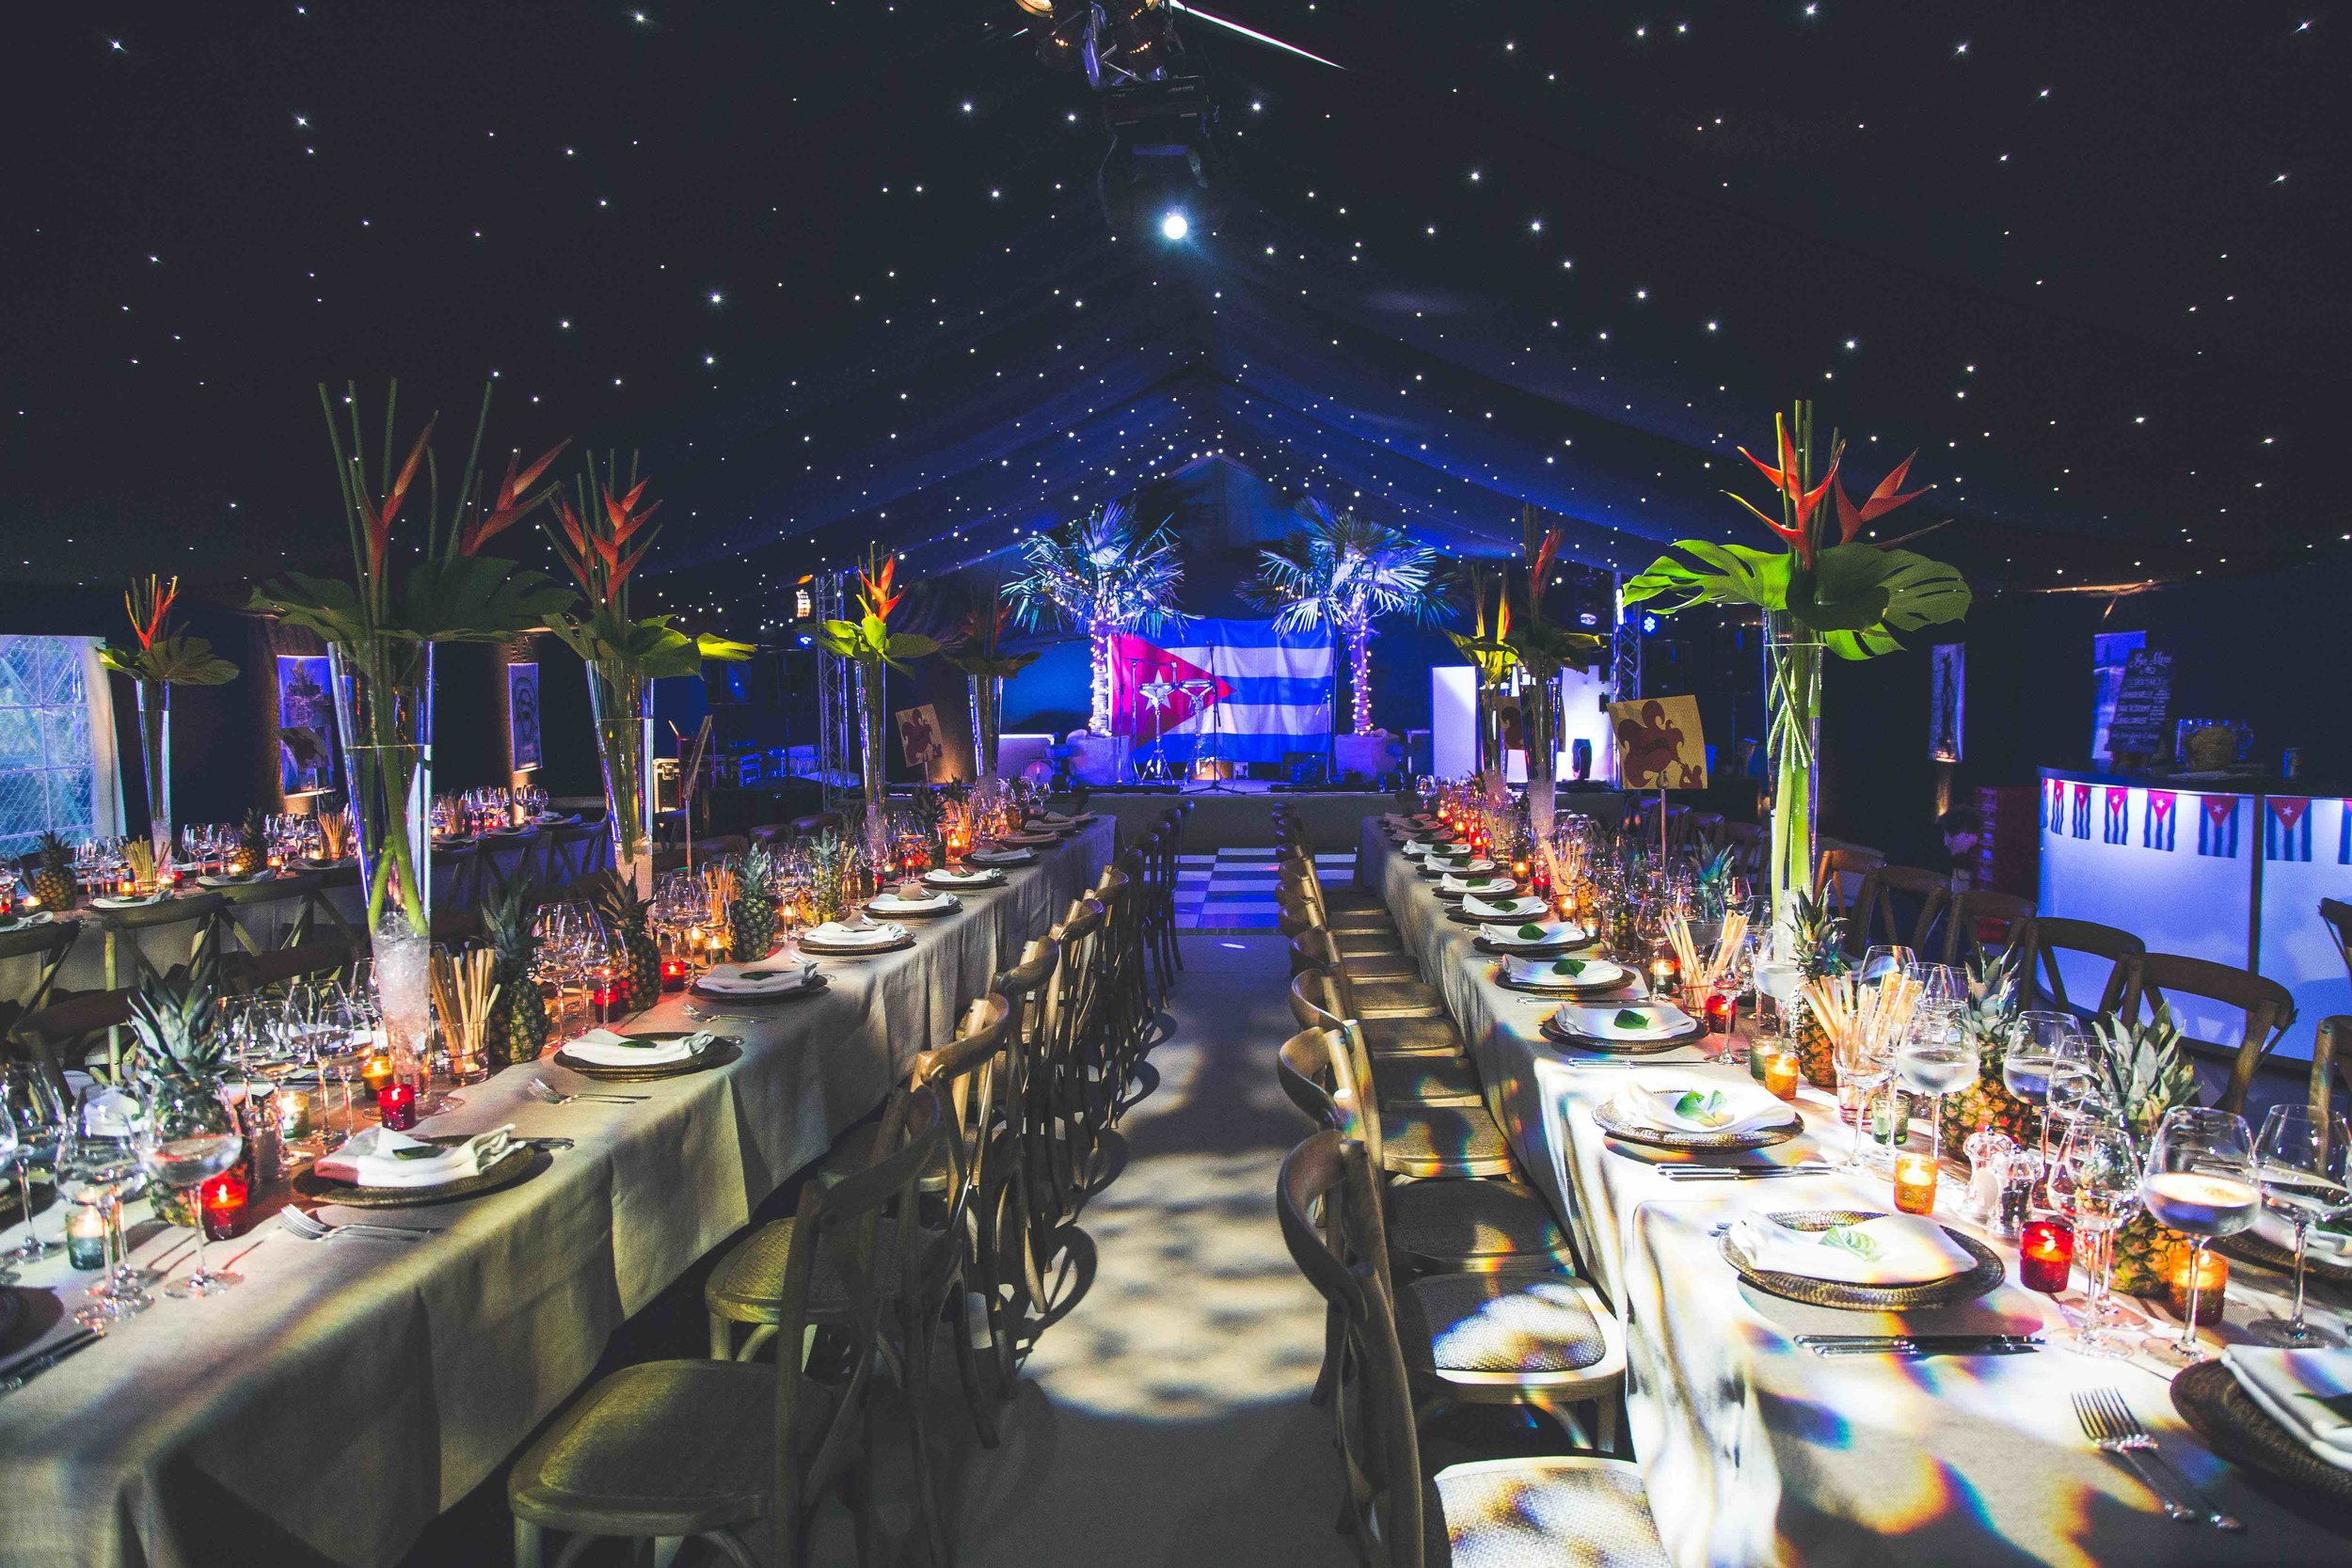 Littleton-Rose-Party-Planners-Dorset-Cuban-Birthday-Party